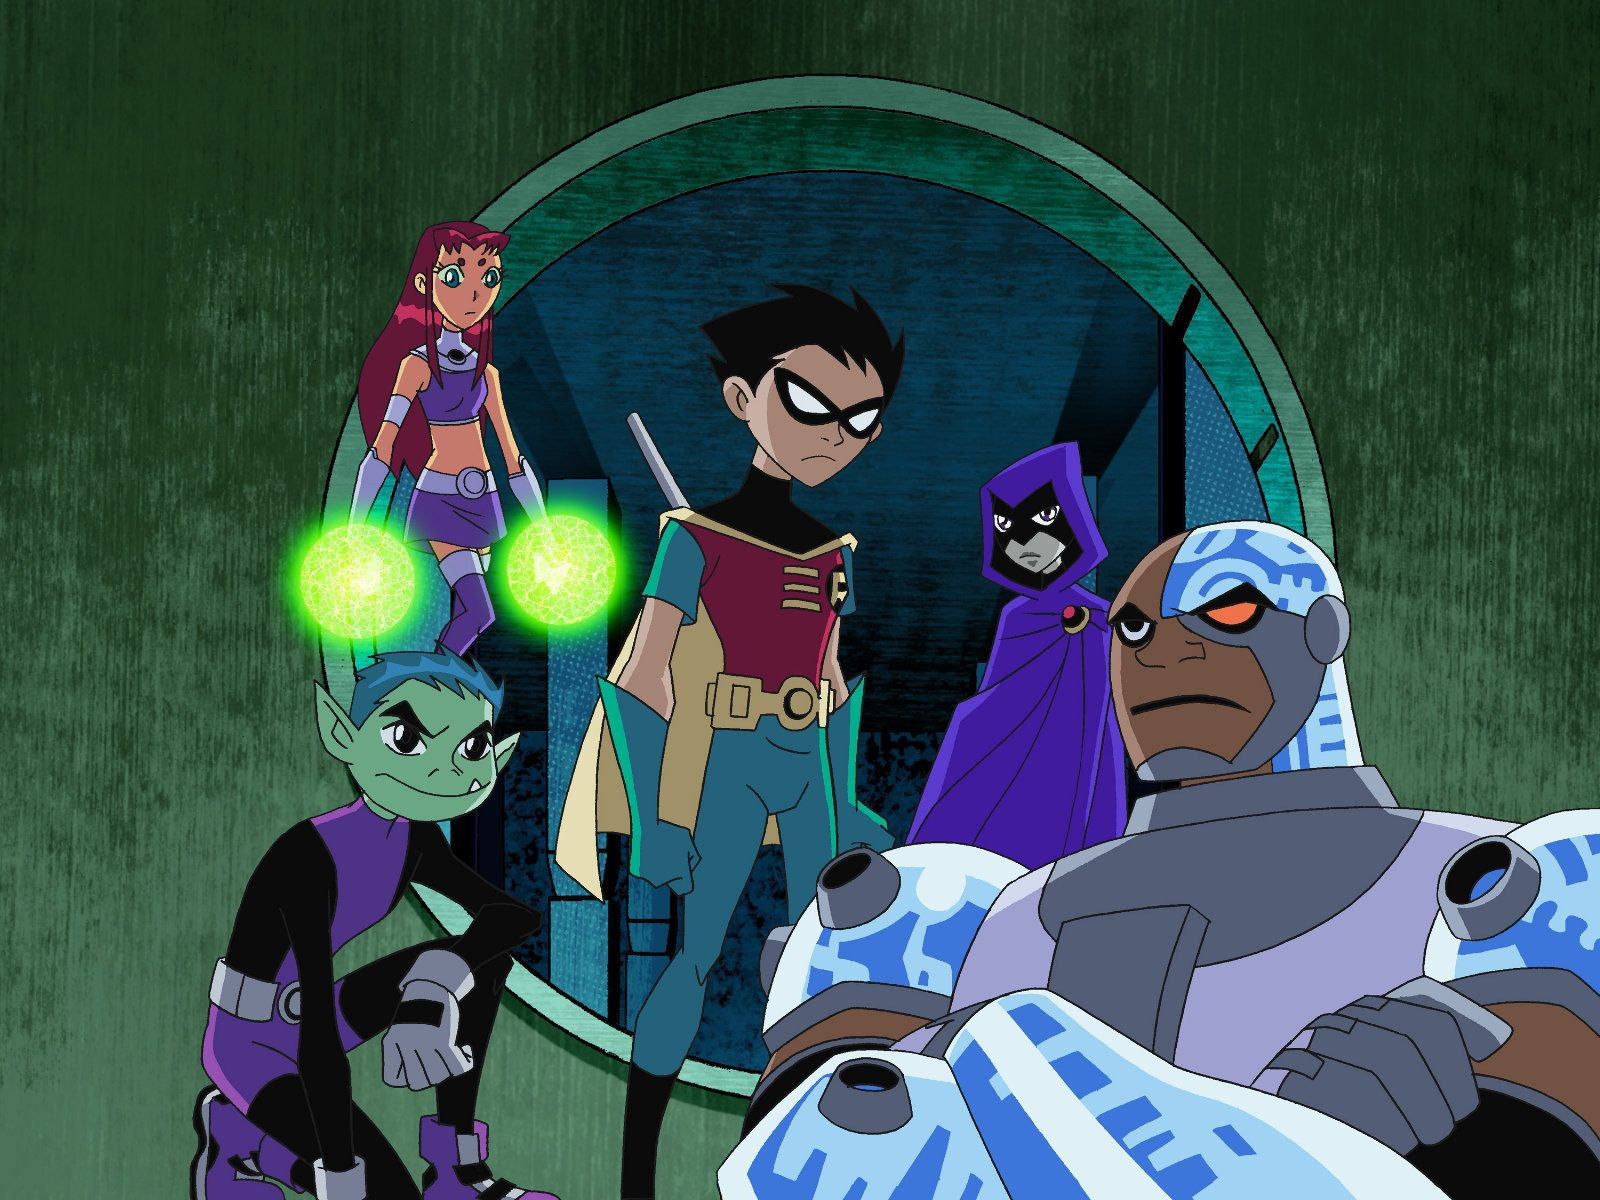 Teen titans season download mediafire, gym fuck girl